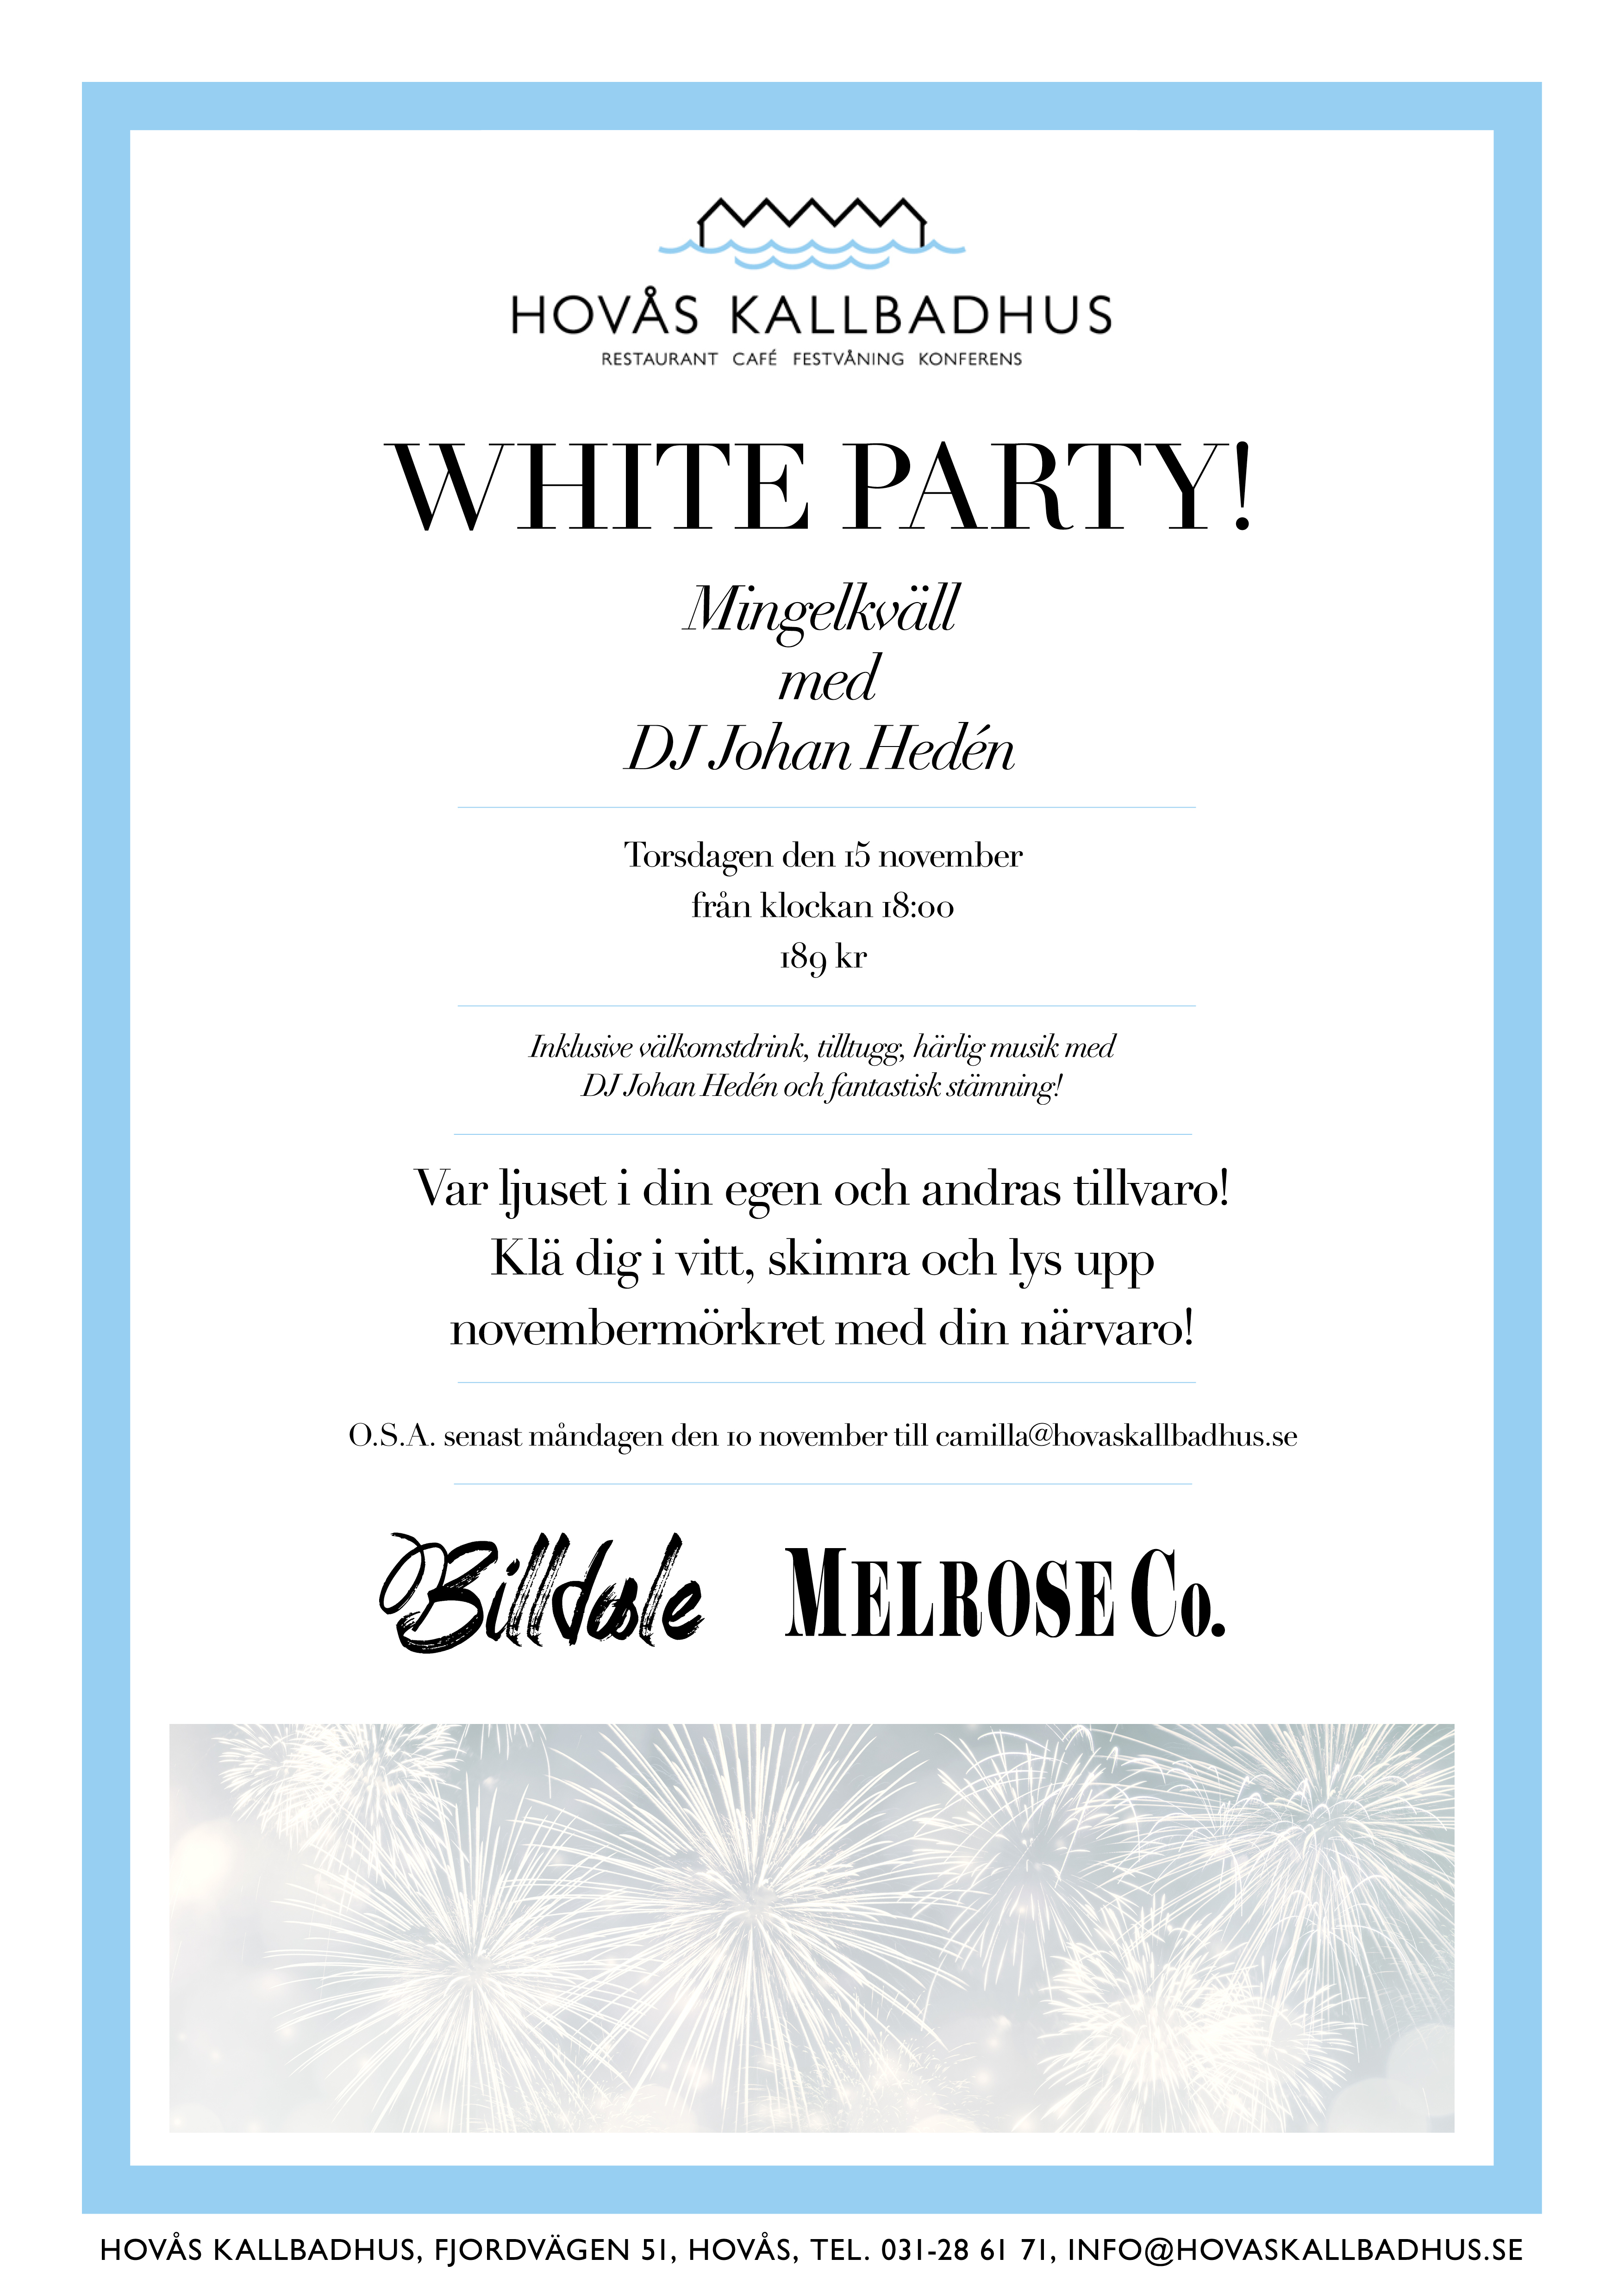 White Party! Mingle Event!